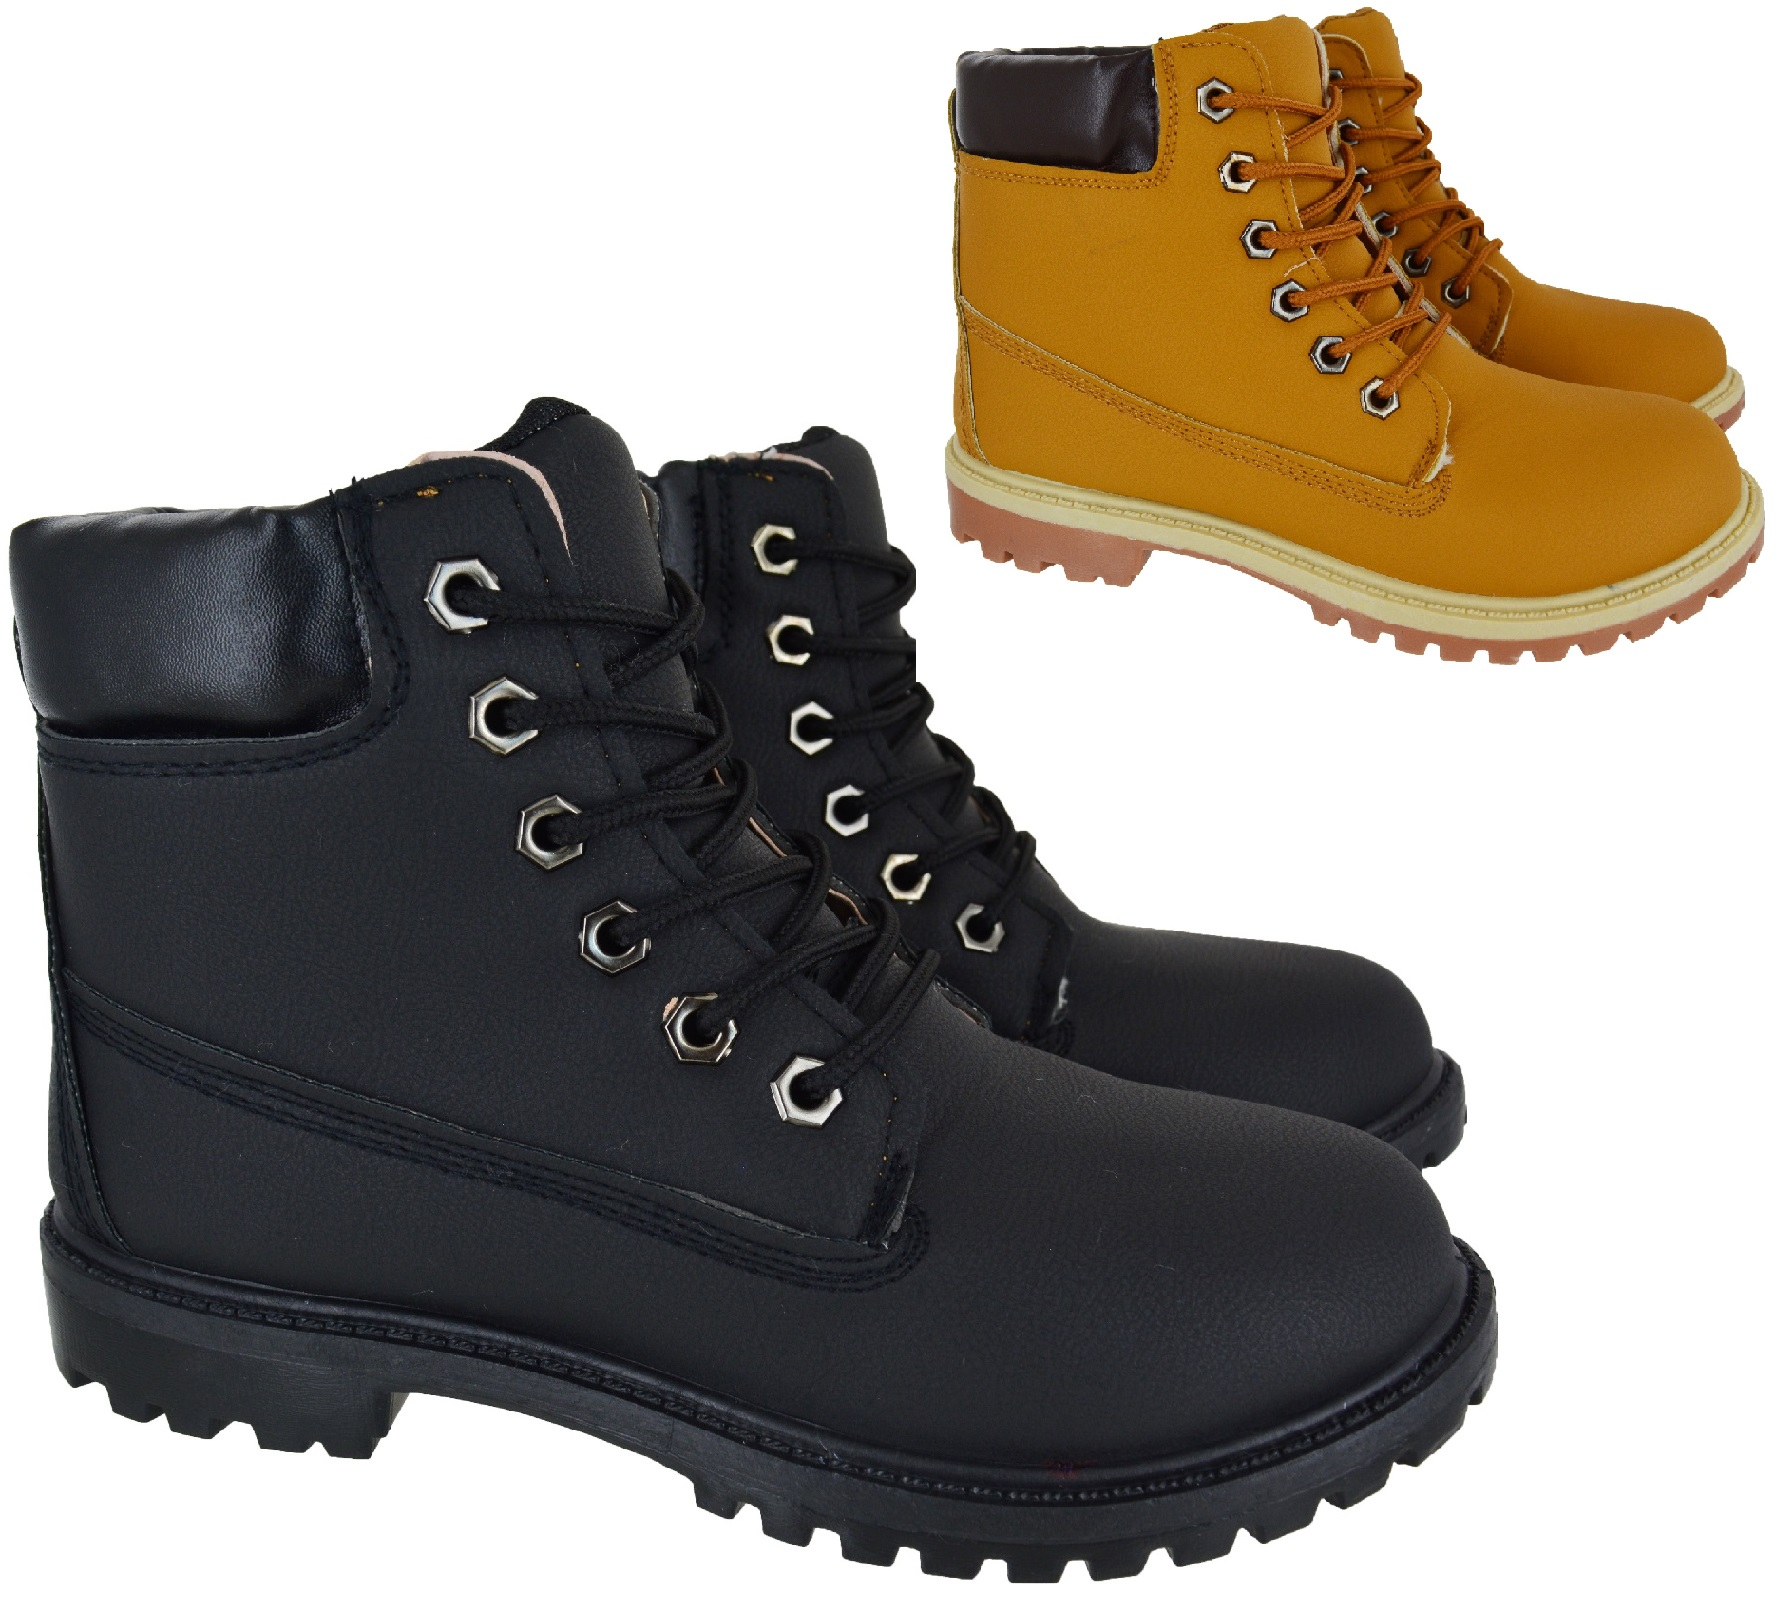 11173c34cbf42 Sentinel WOMENS LADIES COMBAT CASUAL GRIP RUBBER SOLE LACE UP ANKLE BOOTS  SHOES SIZE 3-8